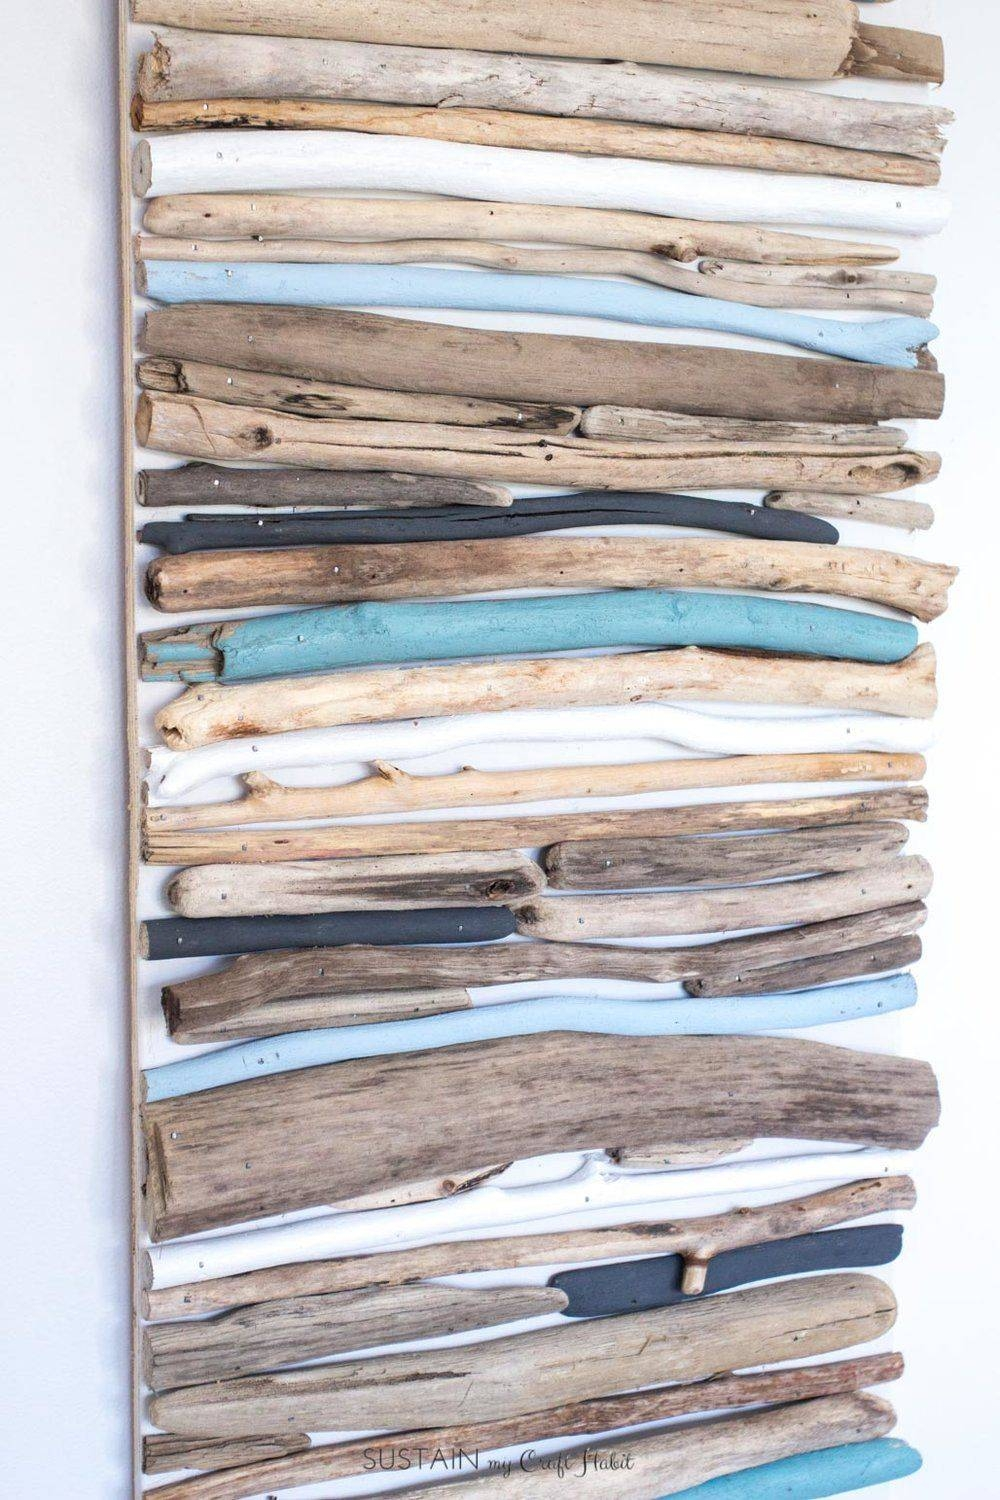 Diy Coastal Decor – Painted Driftwood Wall Art | Driftwood Wall In Current Coastal Wall Art Decor (View 11 of 20)